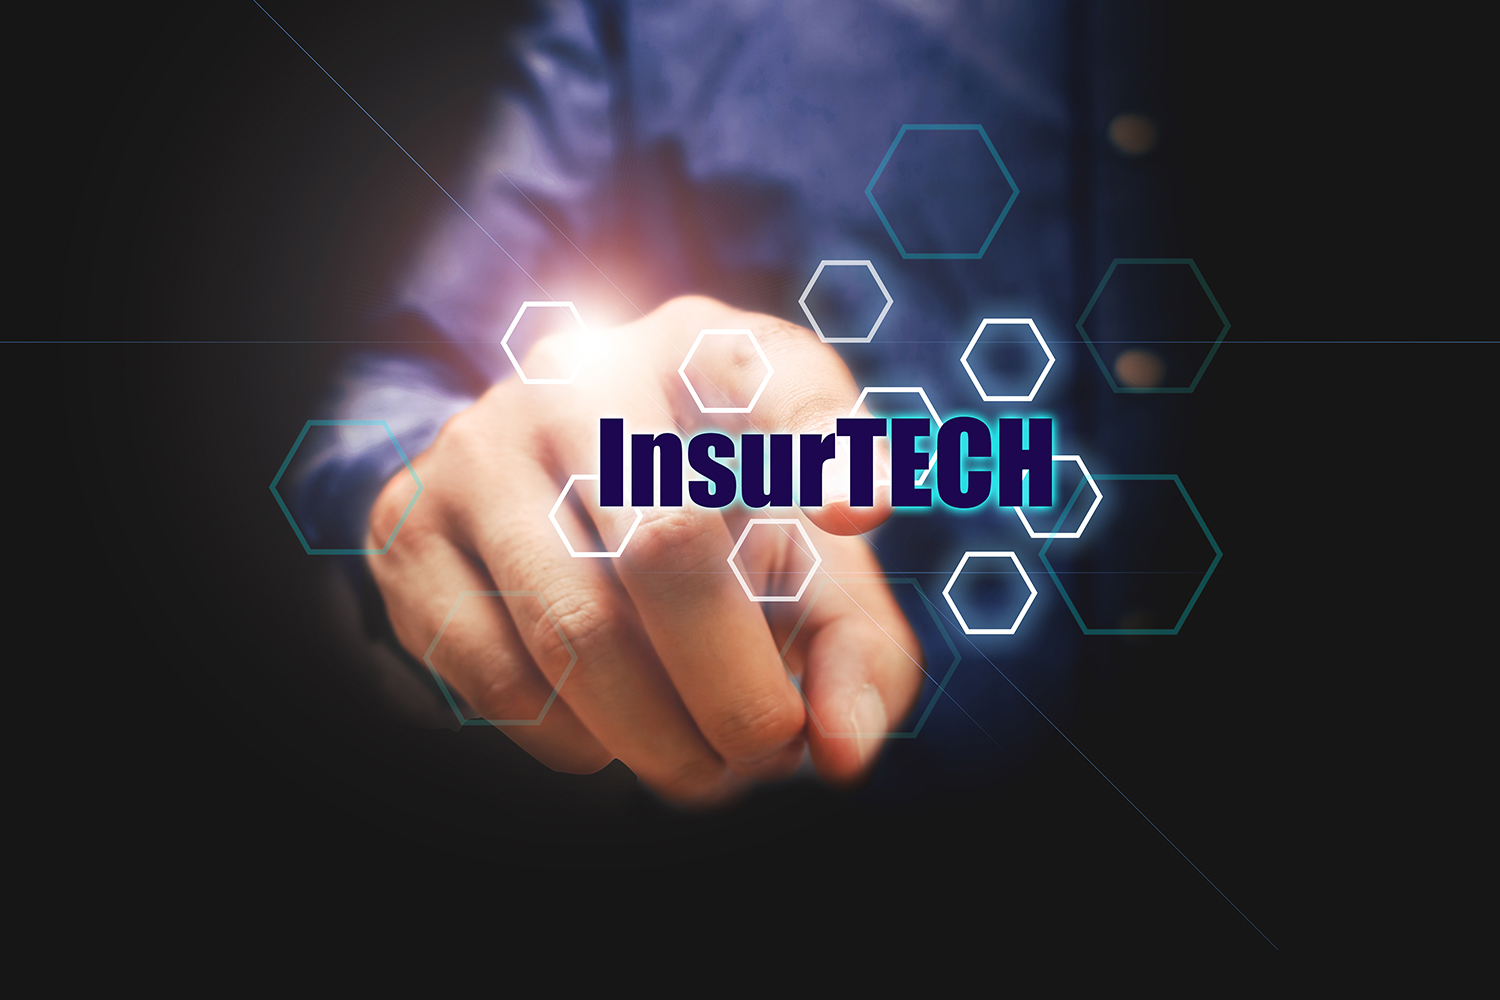 UConn Fuels Insurtech Boom with Innovative New Program